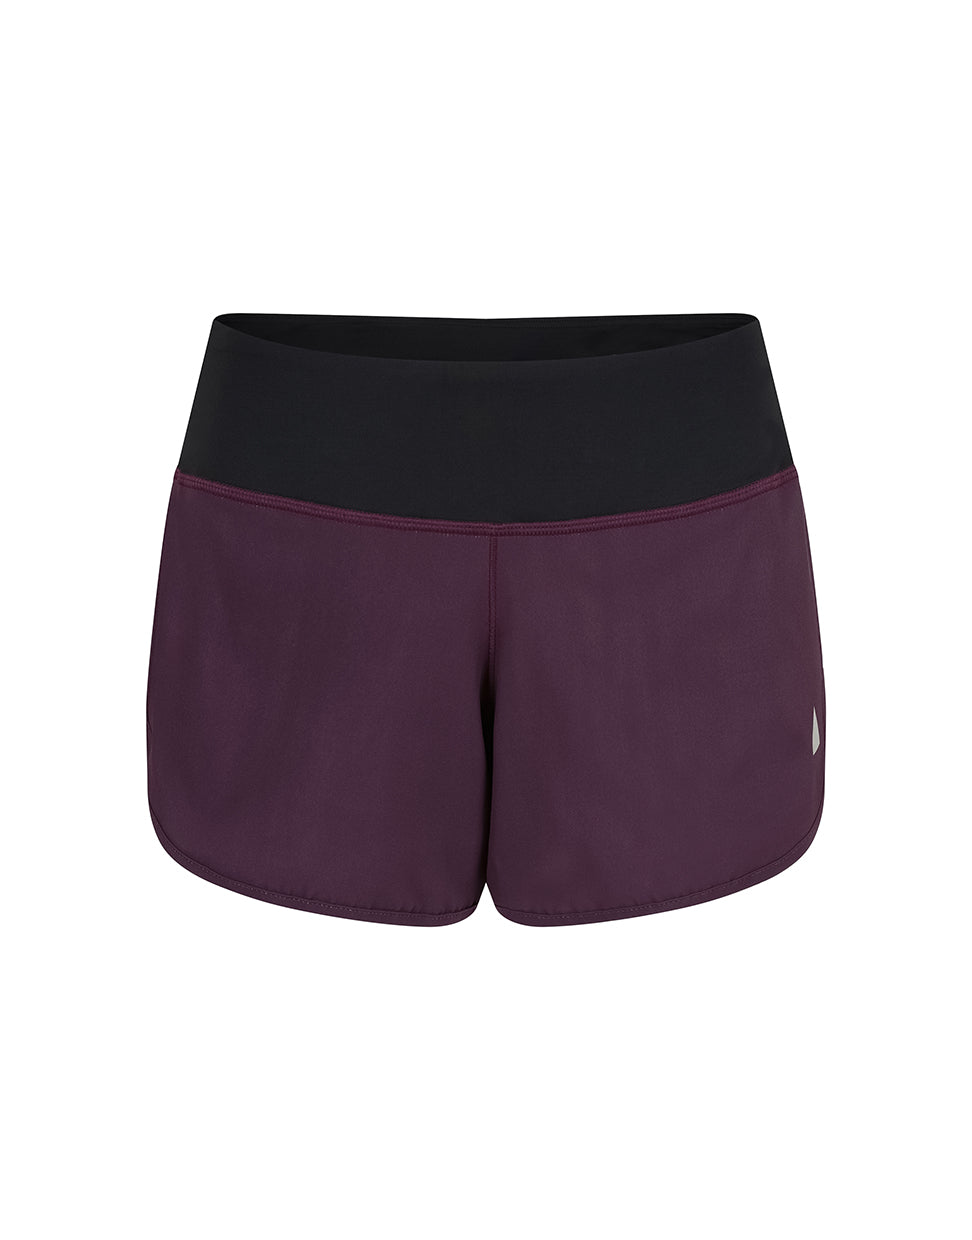 Shorts Basic Color Vinho